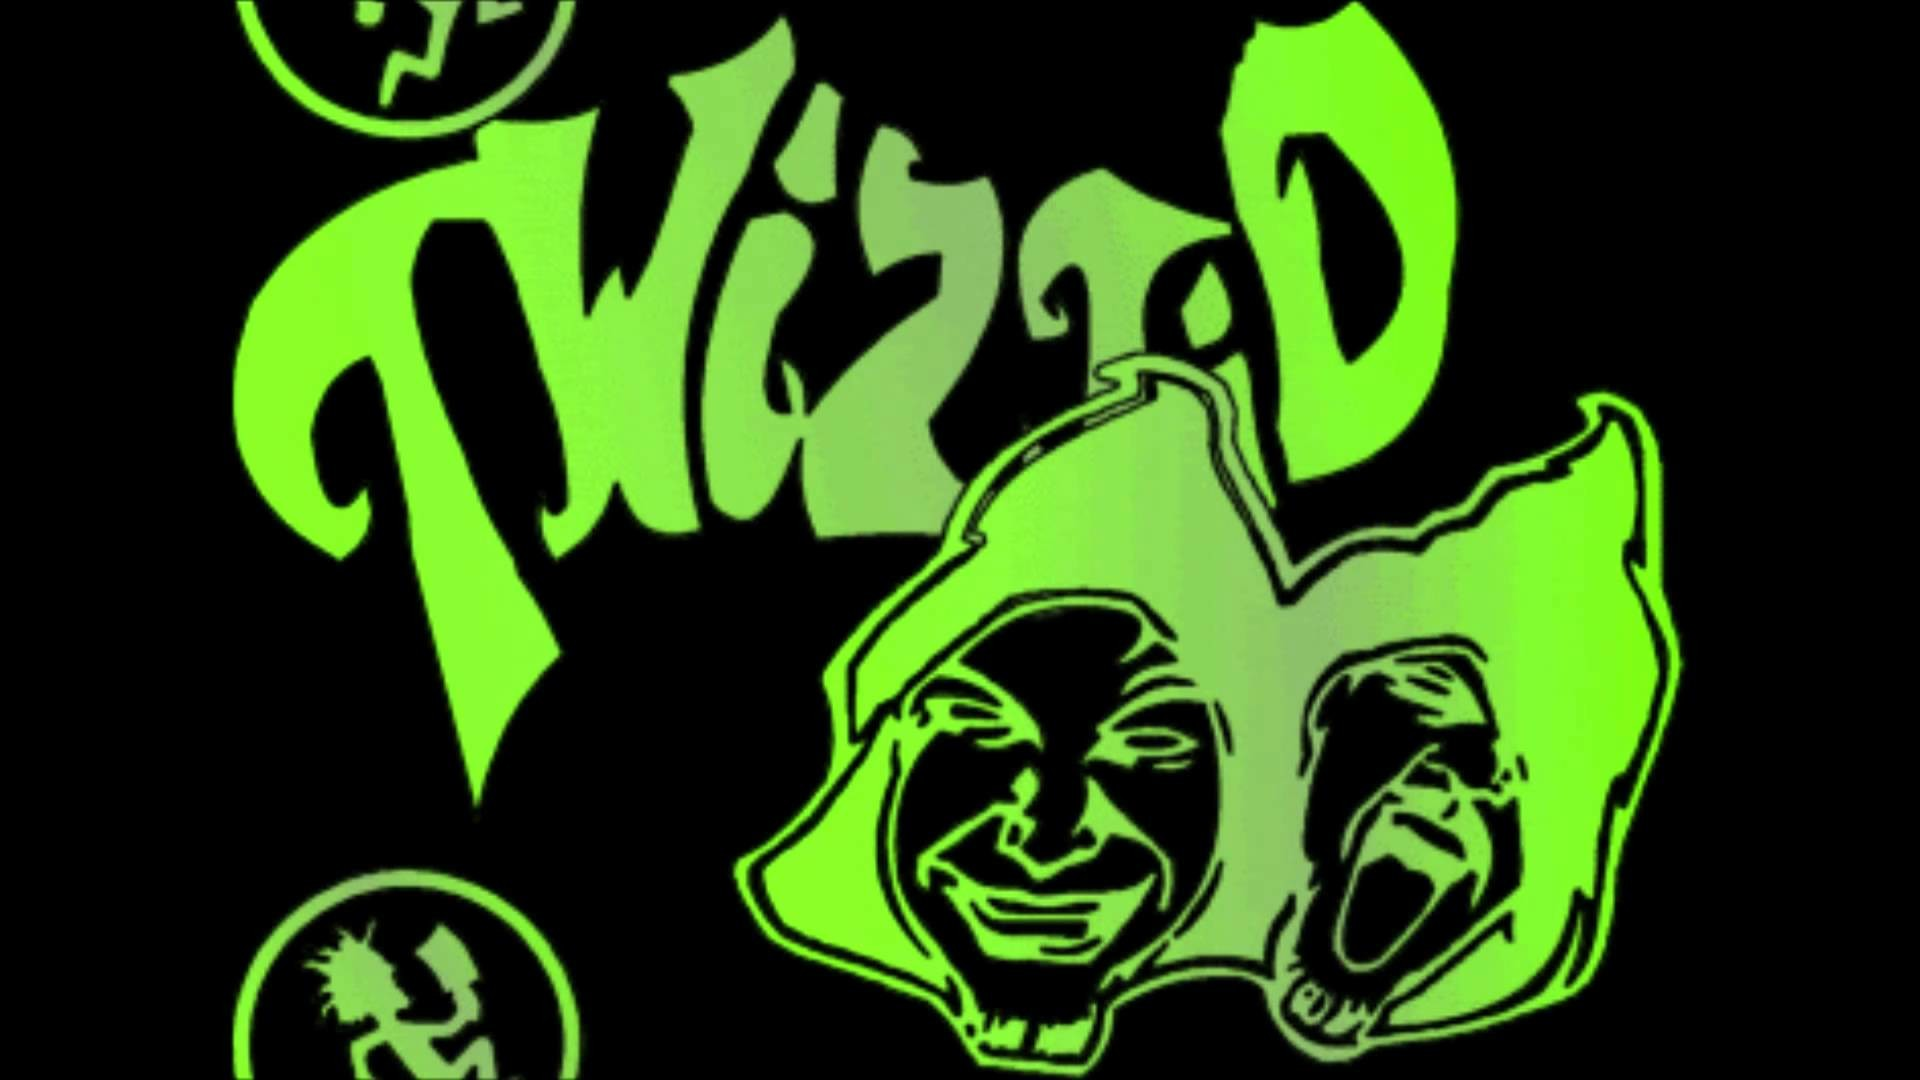 Twiztid Wallpapers HD. Twiztid : Get Off of Me – YouTube